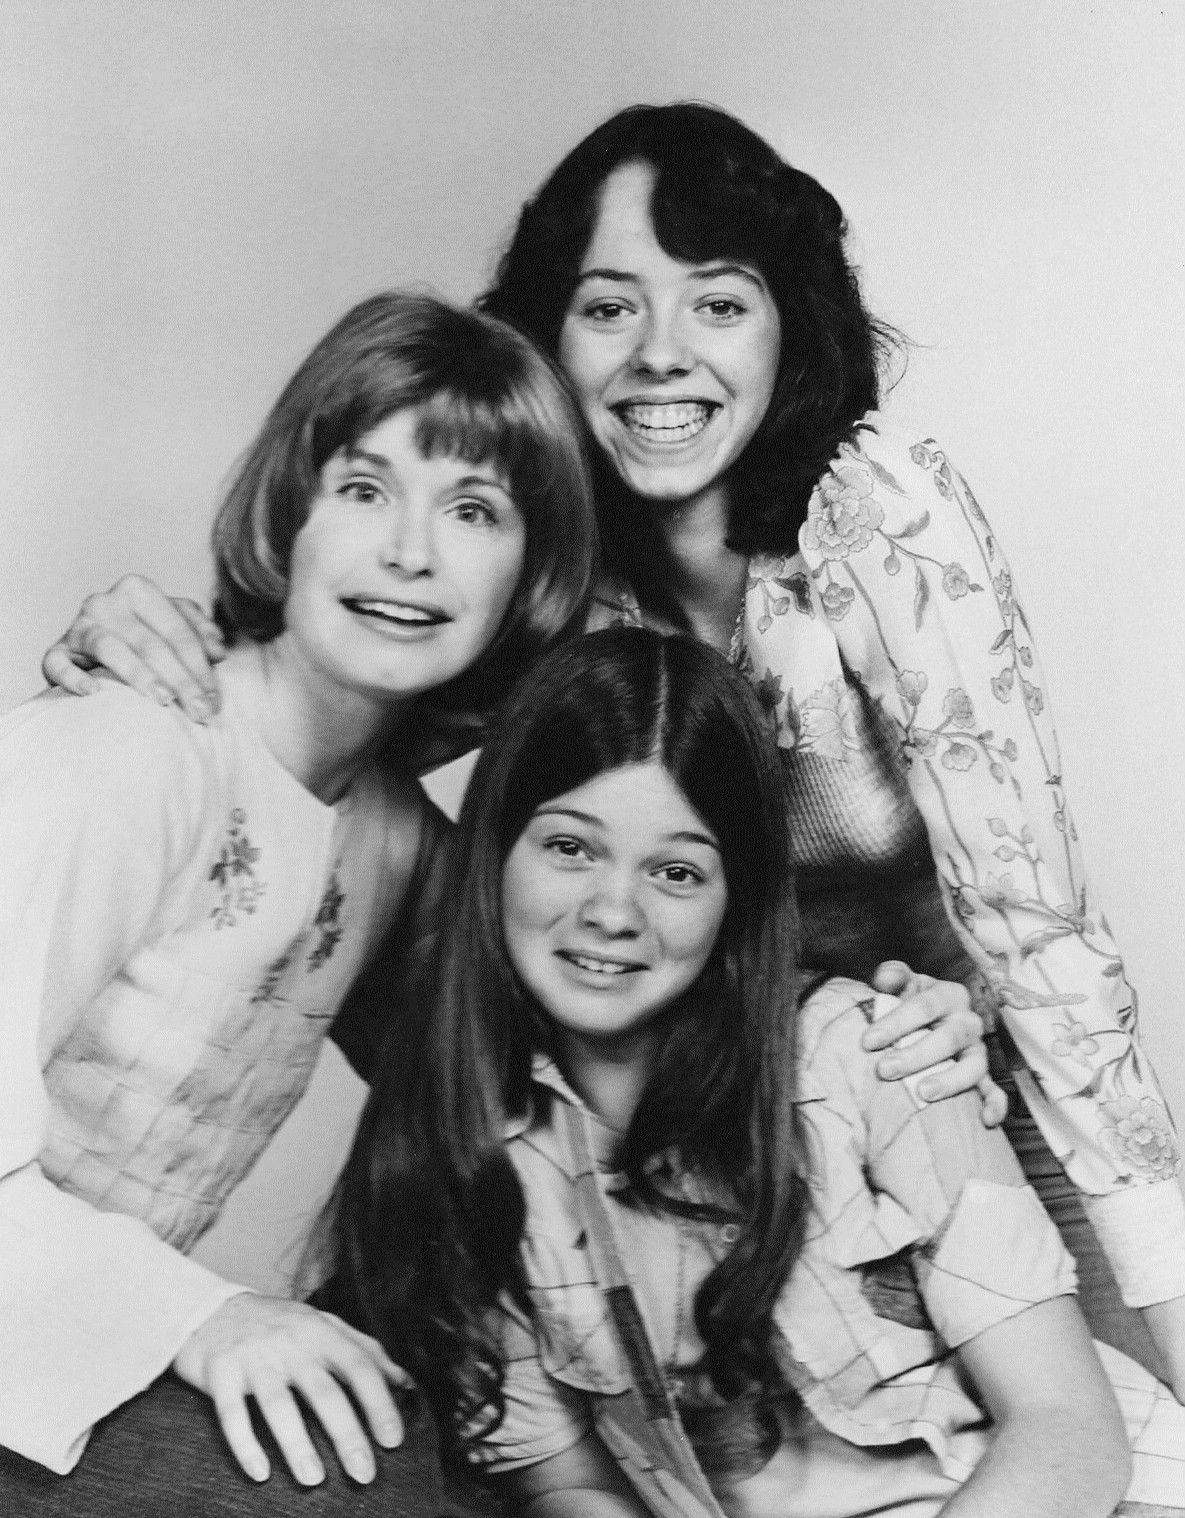 Actress Mackenzie Phillips Top Turns 58 Today She Was Born 11 10 In 1959 She S Shown Here With Her Cast Mates From On Valerie Bertinelli Valerie Her Cast